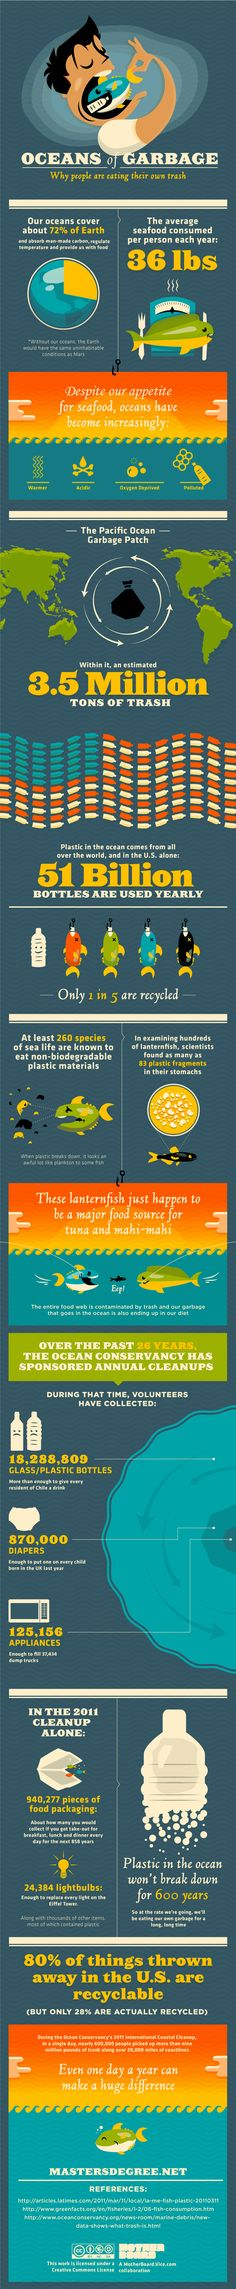 Oceans Of Garbage (Infographic)  Plastic islands are a huge problem in our oceans. It's important to educate yourself. #recycle #infographic